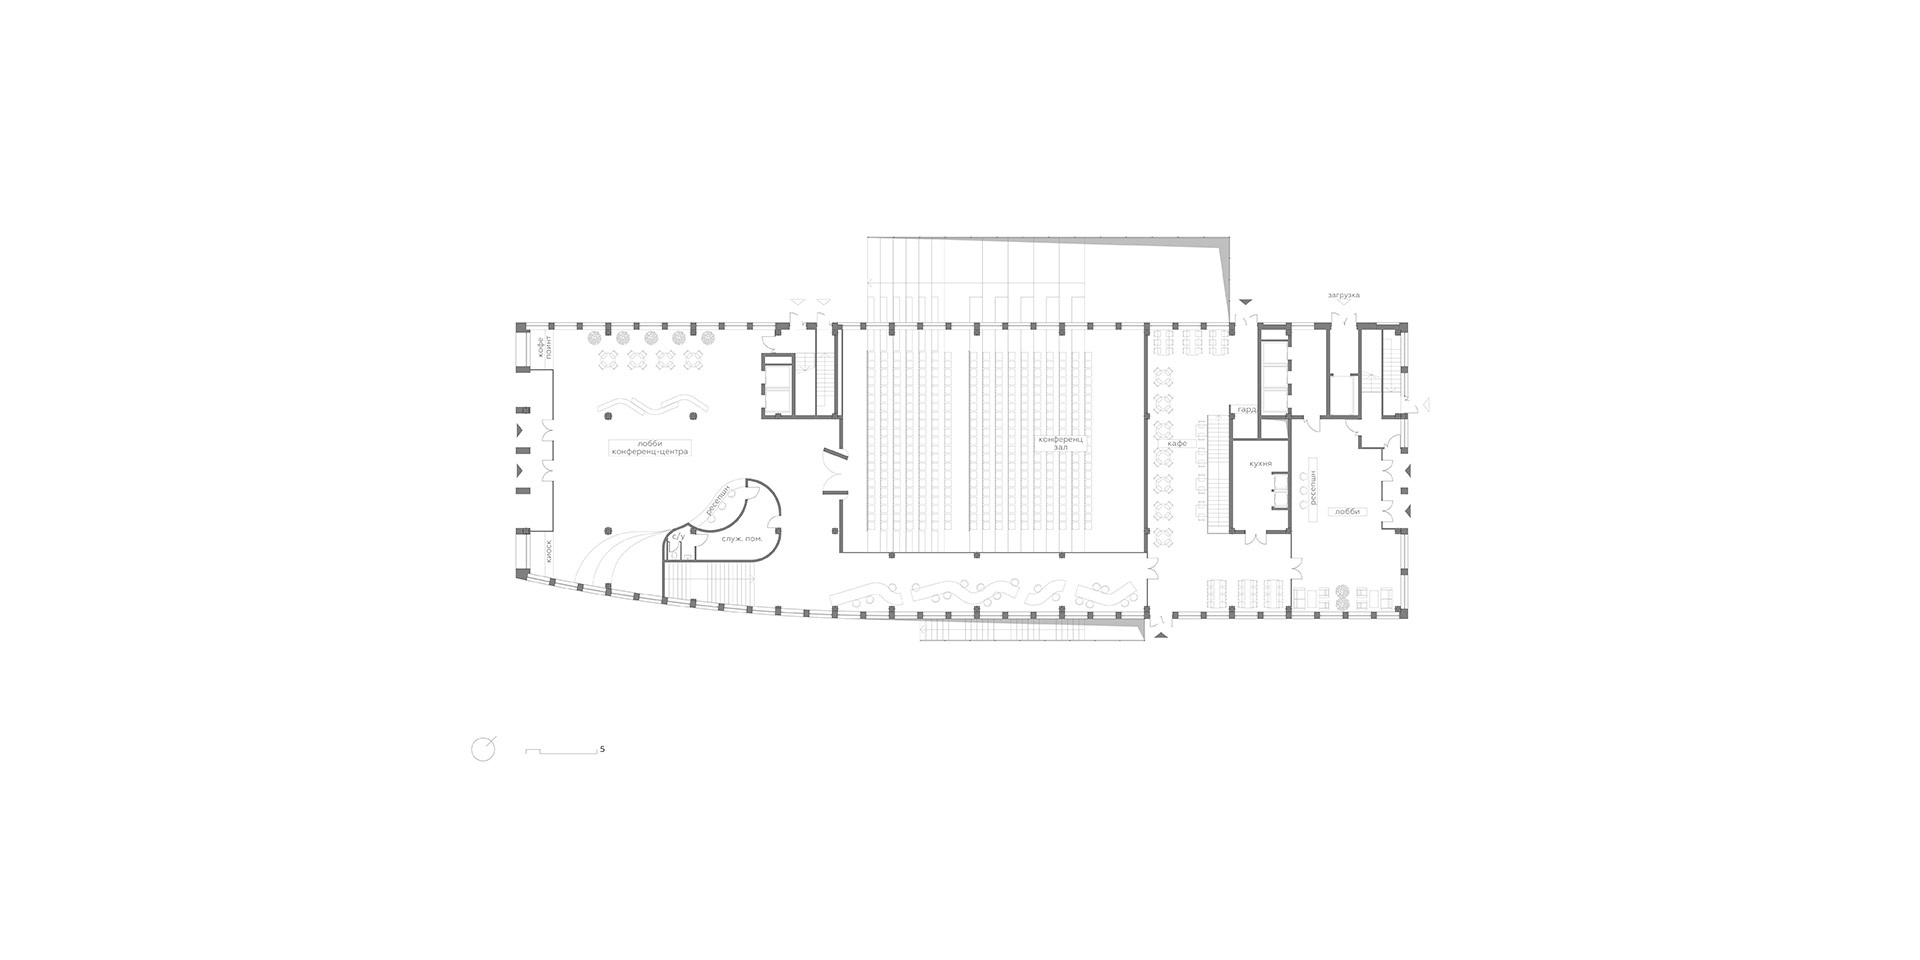 University Conference Center Architectural Concept